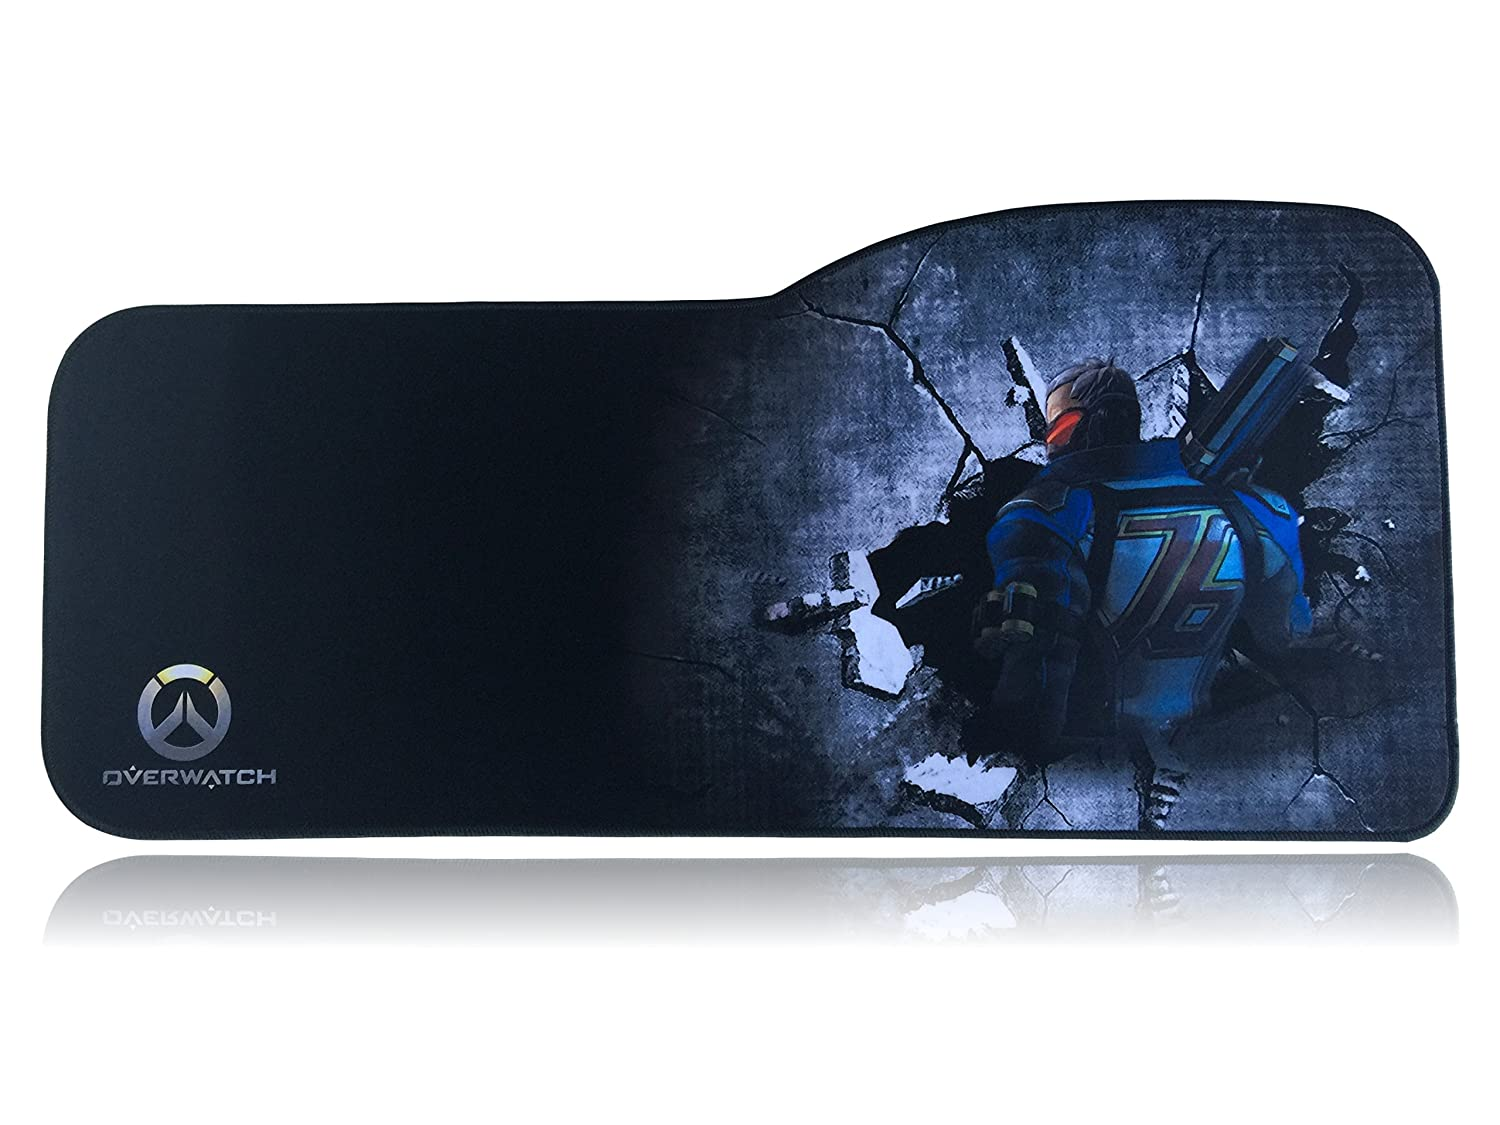 Overwatch Extended Size Custom Professional Gaming Mouse Pad - Anti Slip Rubber Base - Stitched Edges - Large Desk Mat - 28.5' x 12.75' x 0.12' (Curve, Hanzo) Shenzhen Longhua New District Fudingtian Rubber Product Factory pbpad-LL1